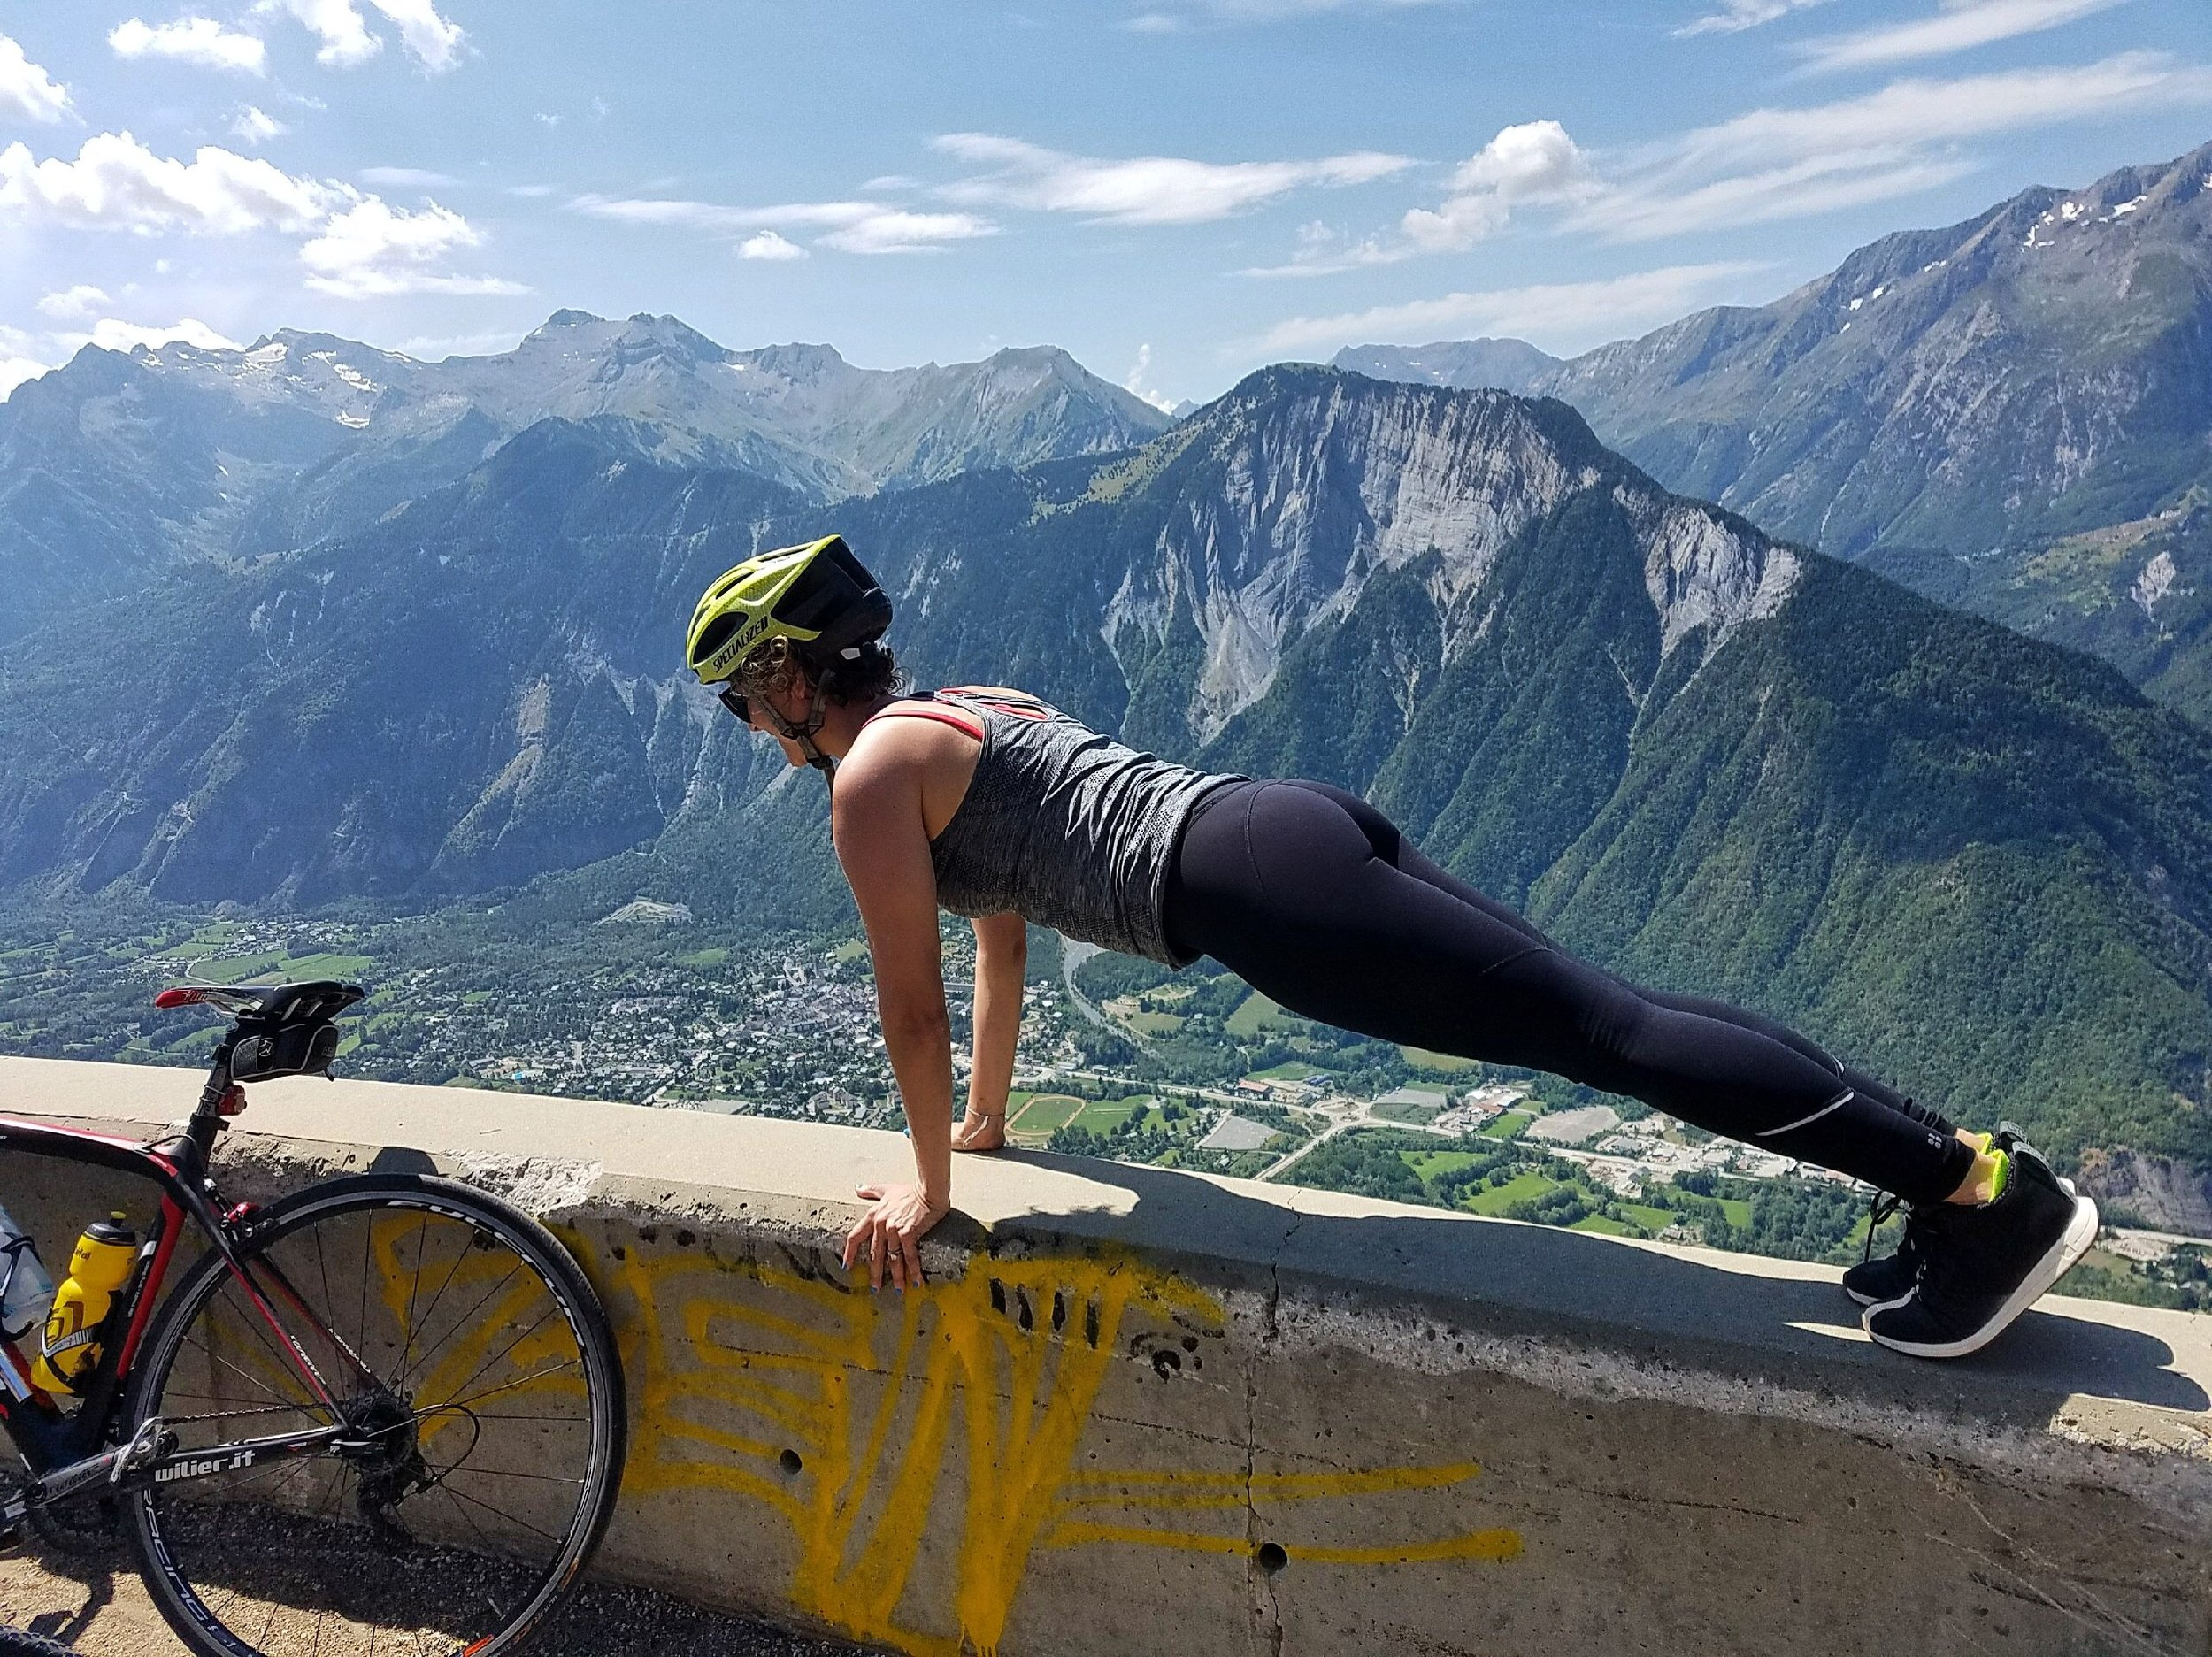 E-Biking + Planking in the French Alps!